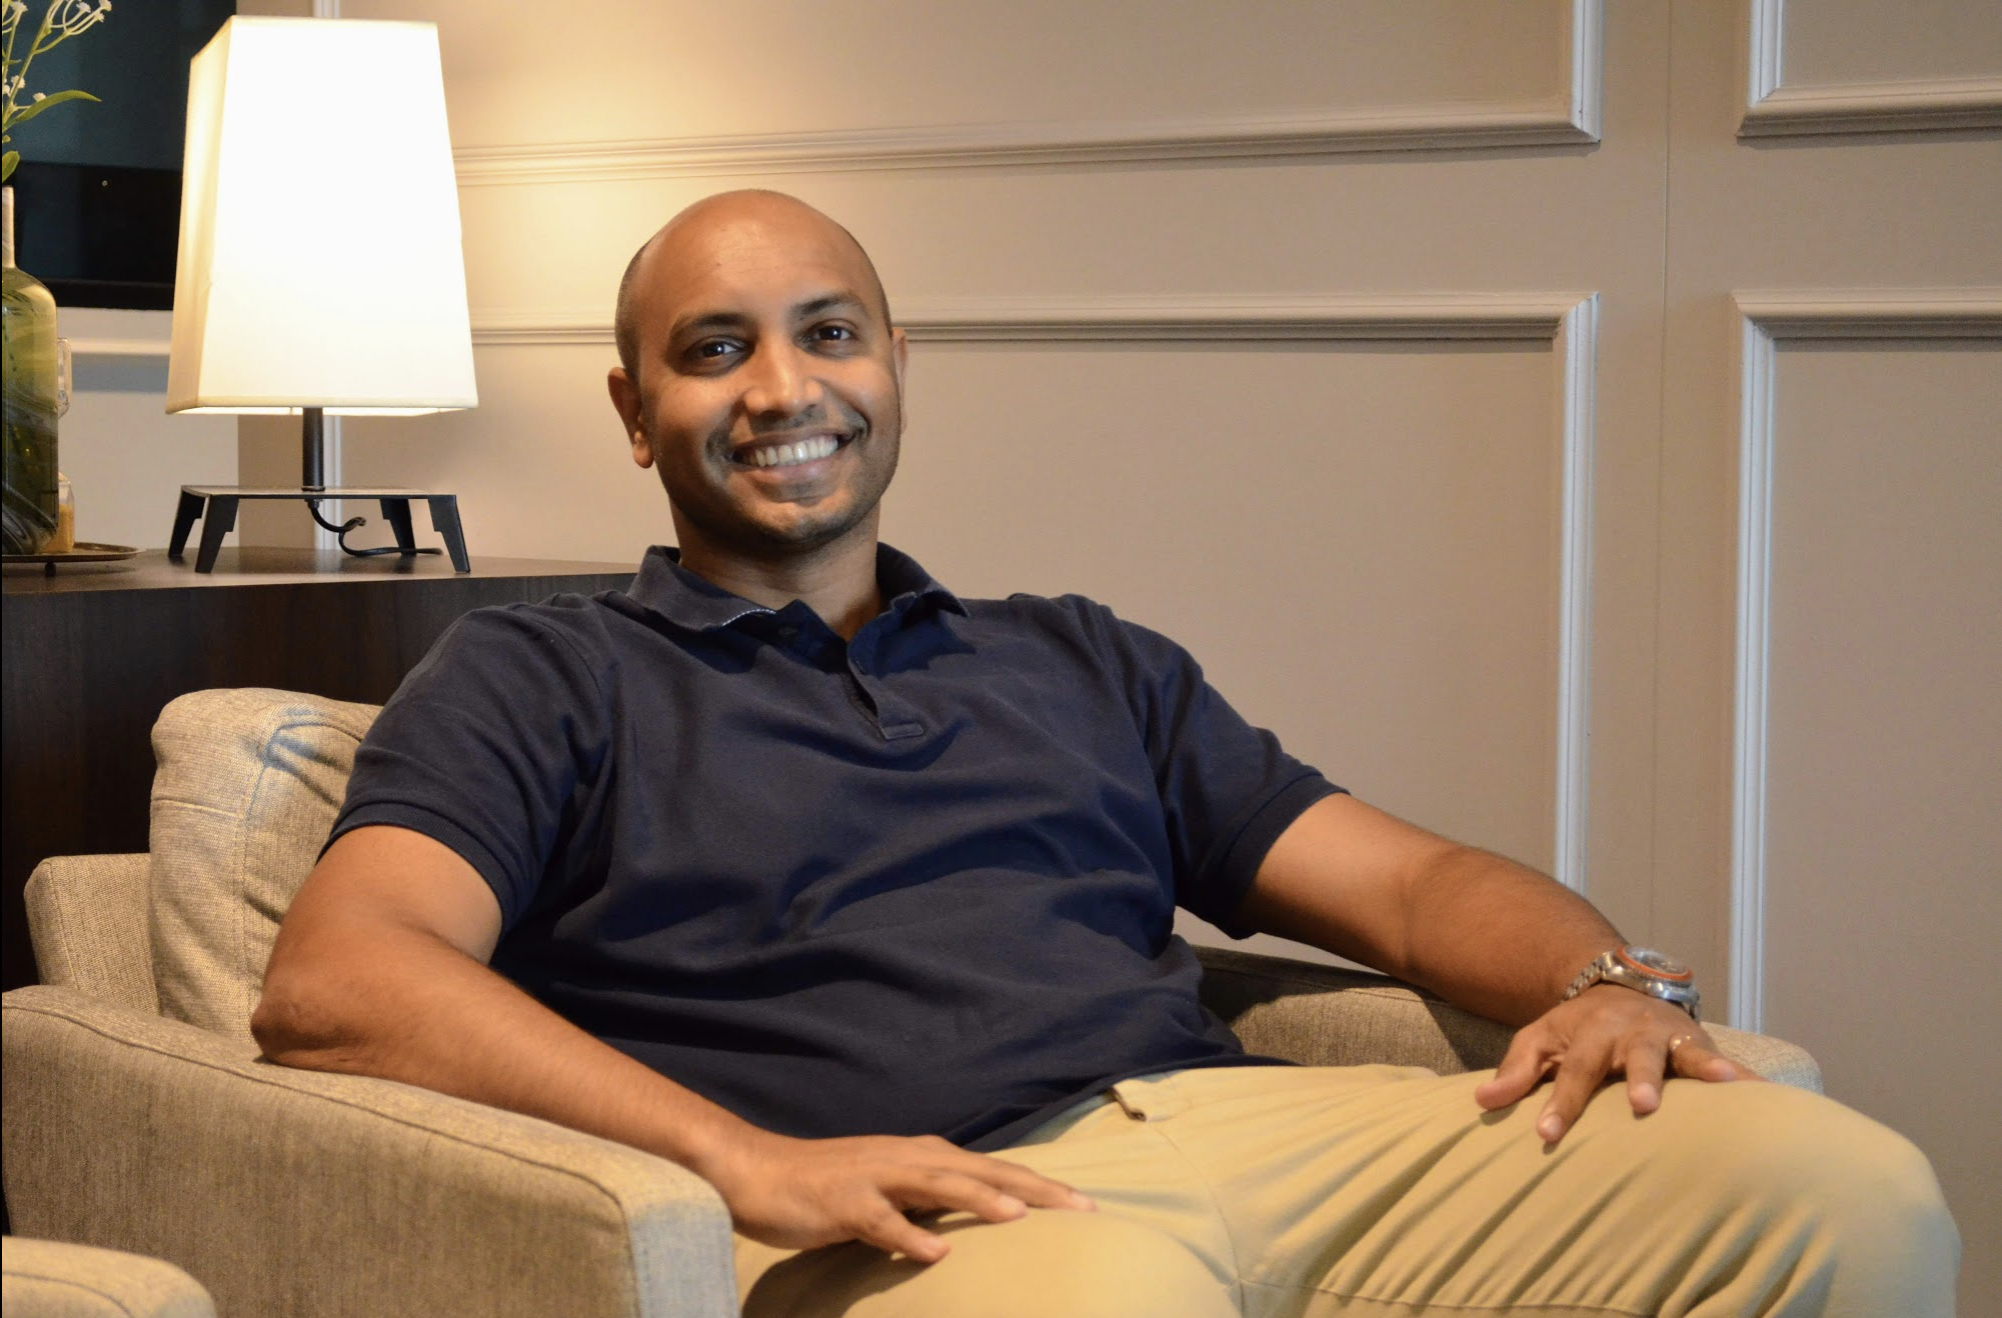 Prajit Nanu, Co-founder and CEO of InstaReM. Photo: Connected to India